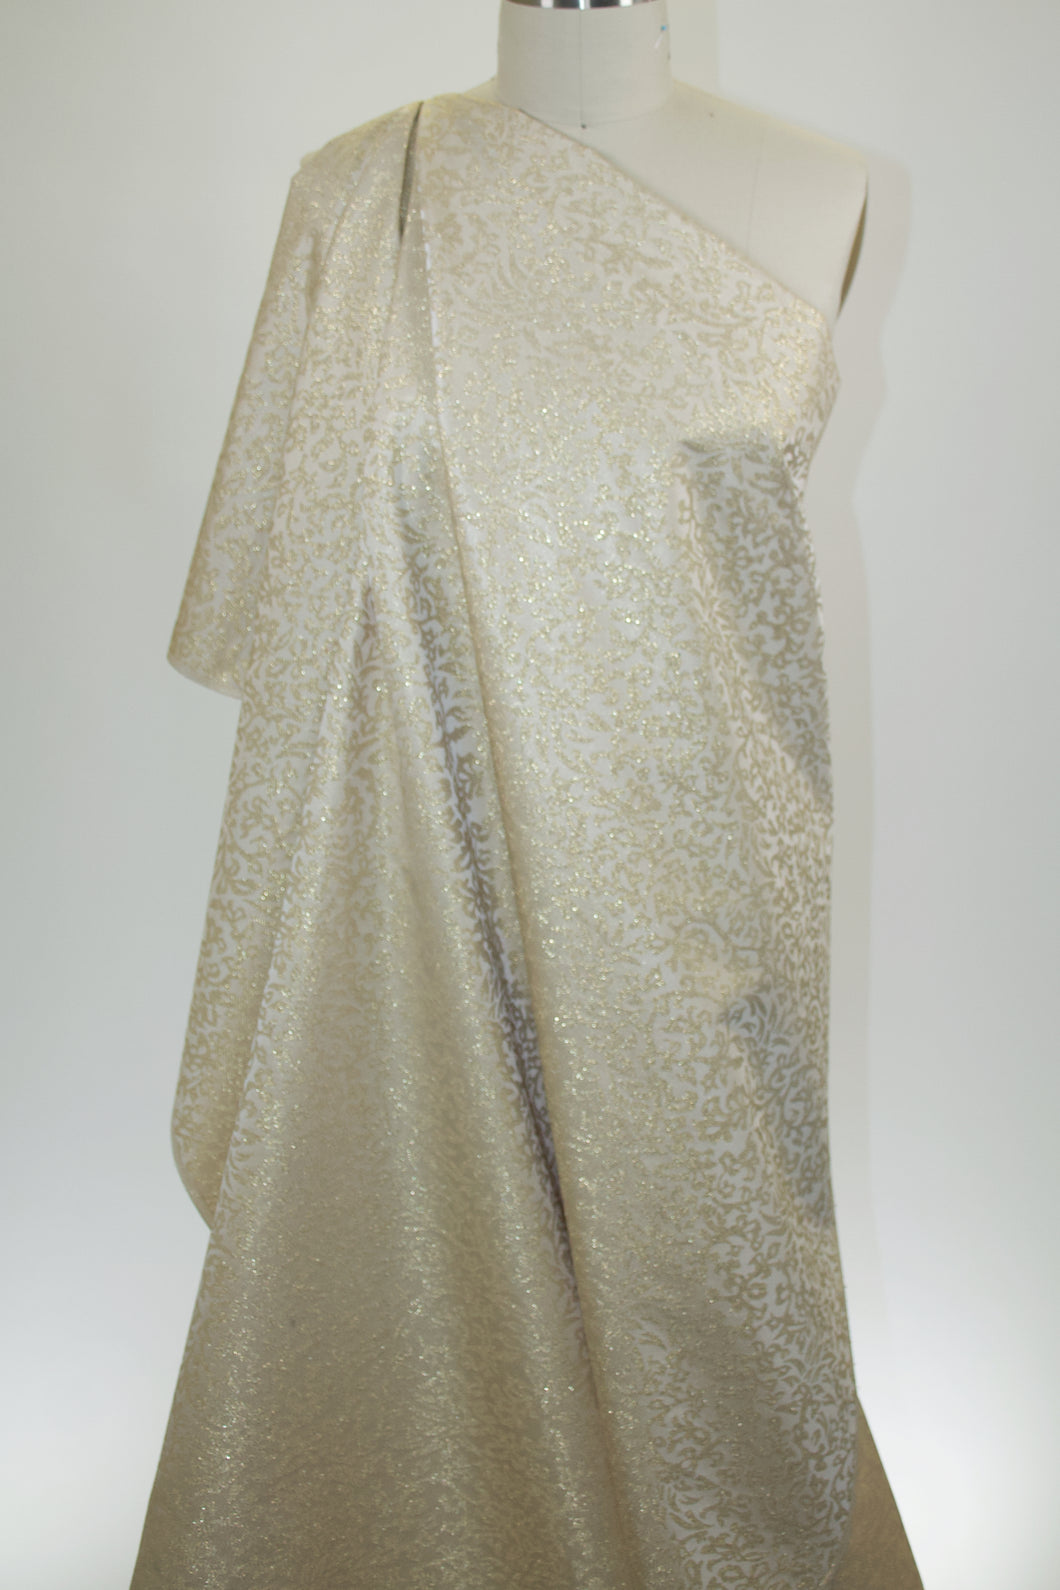 M@rk Jac0bs Metallic Brocade - Ivory/Gold